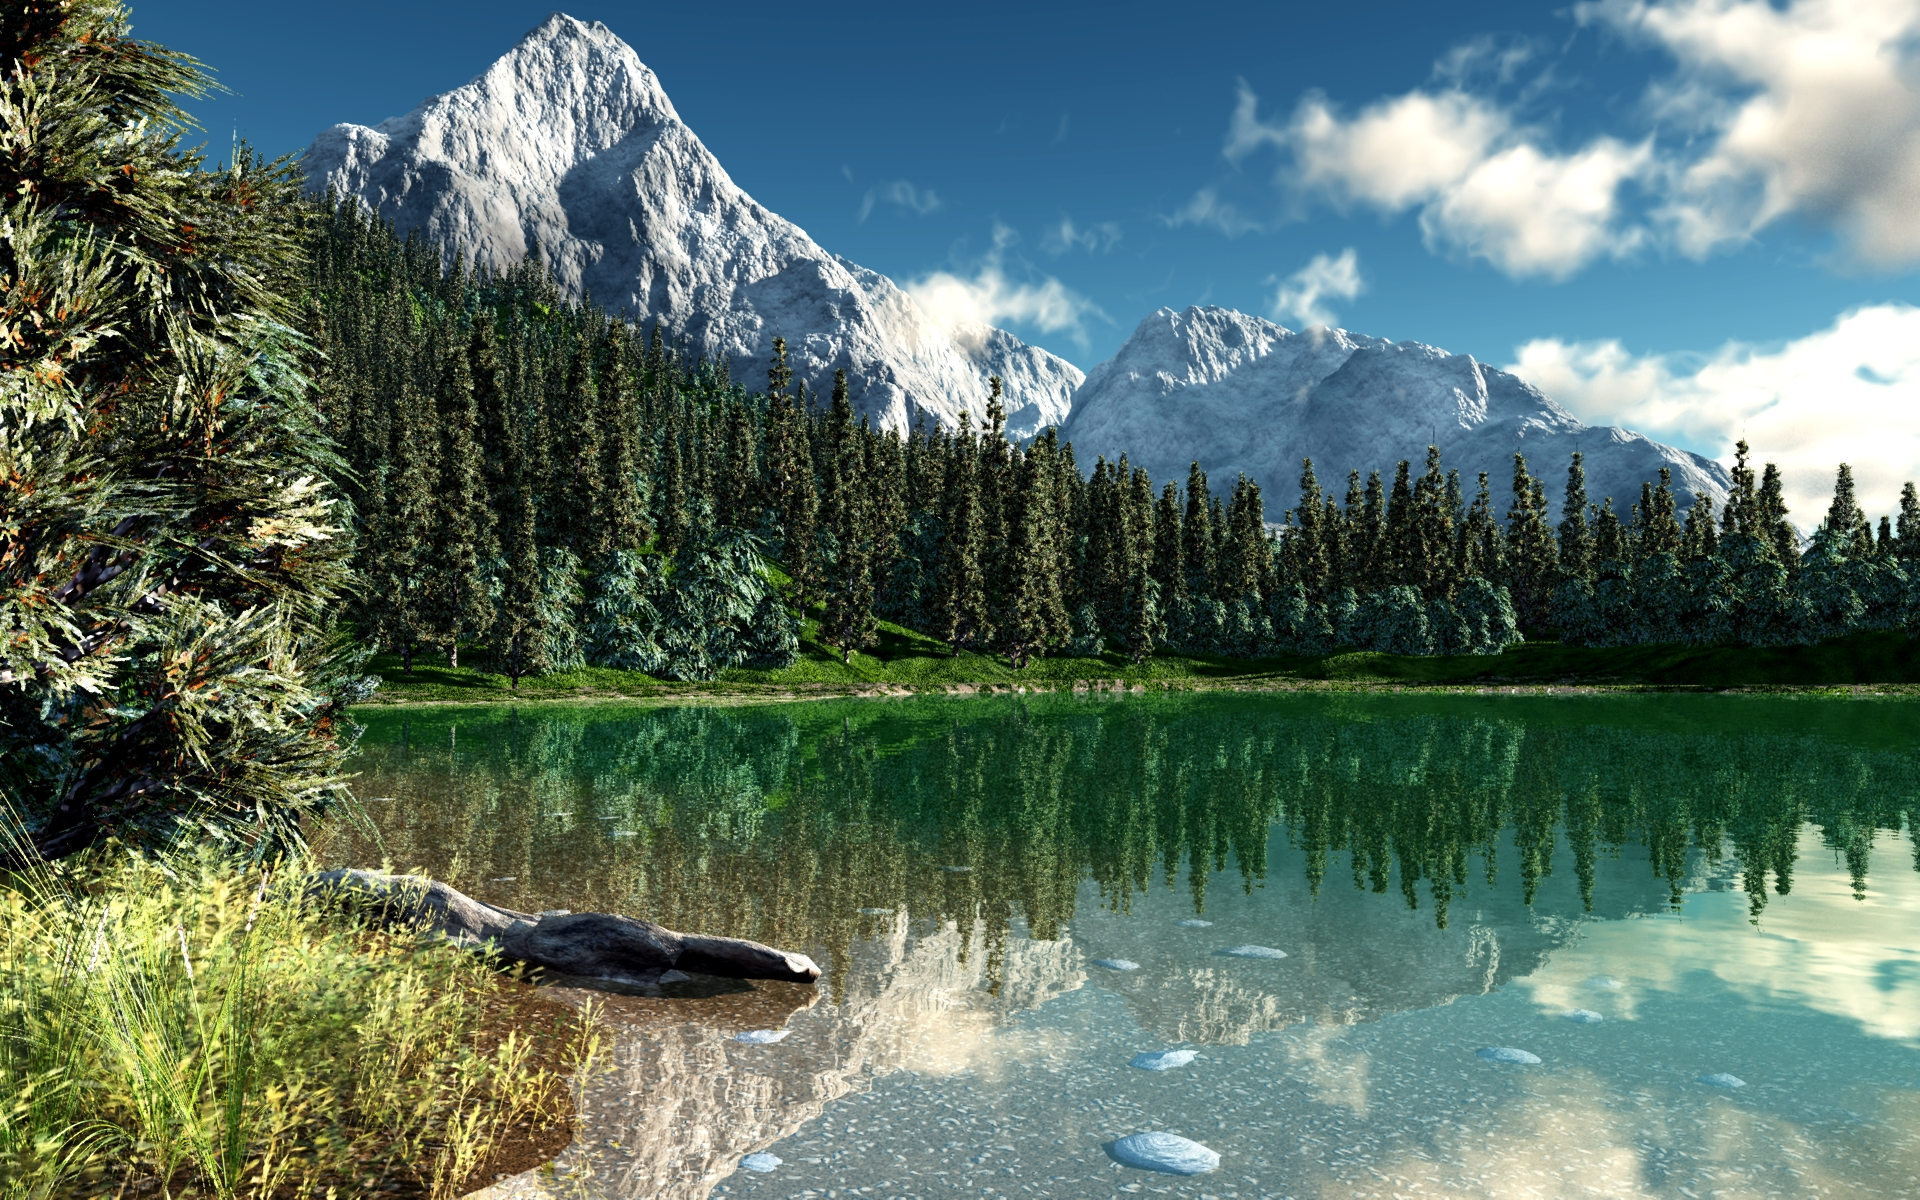 The Rockies Wallpaper 36588 1920x1080 px